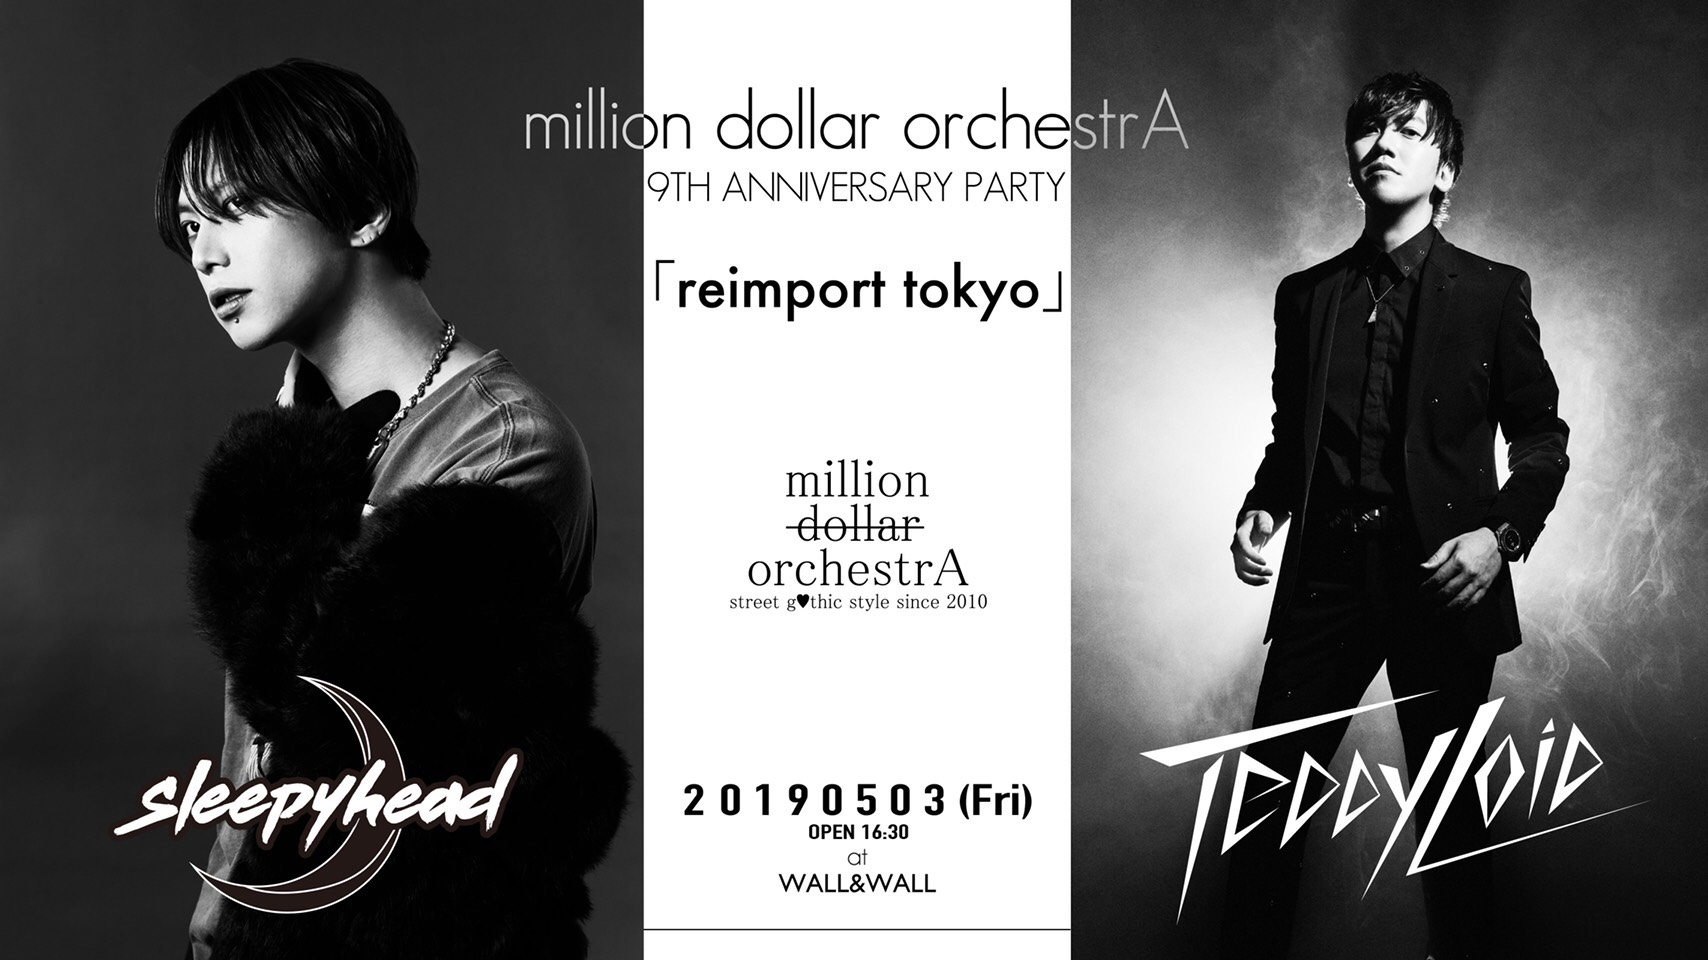 million dollar orchestrA  9TH ANNIVERSARY PARTY「reimport tokyo」 sleepyhead x TeddyLoid